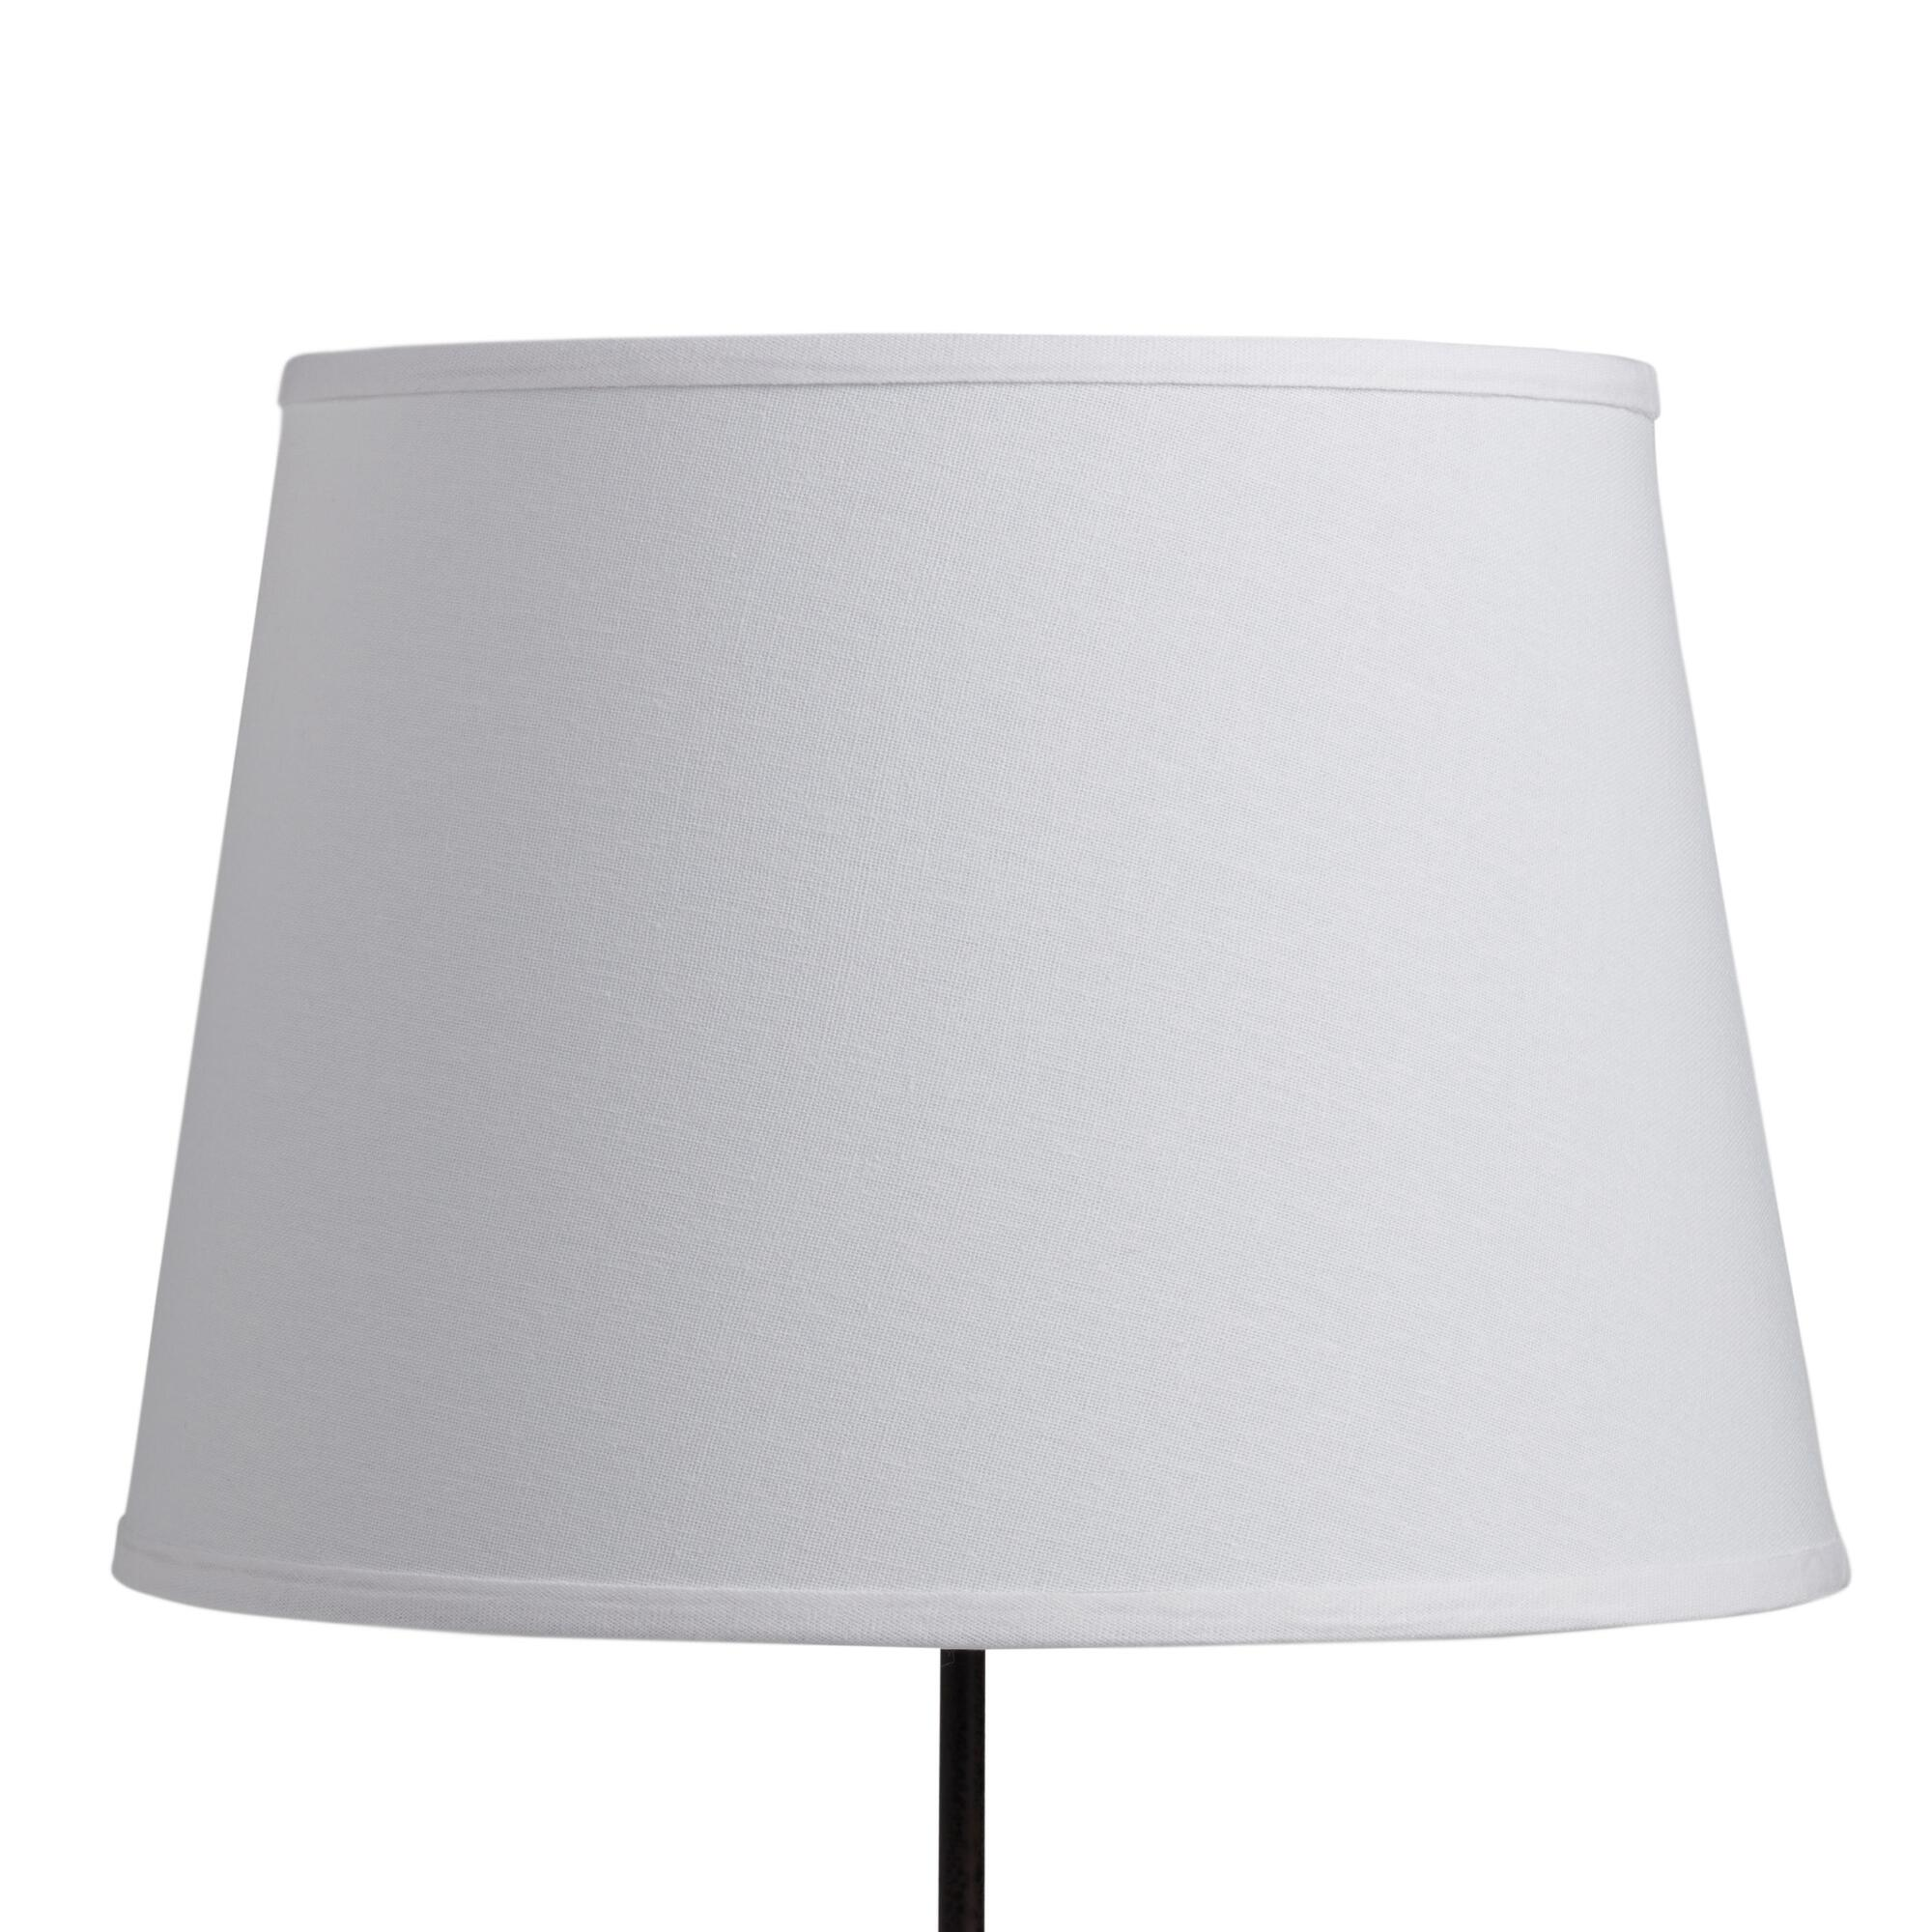 White table lamp shades home design great large lamp shades for table lamps 12 for feather lamp shade b and q with aloadofball Image collections